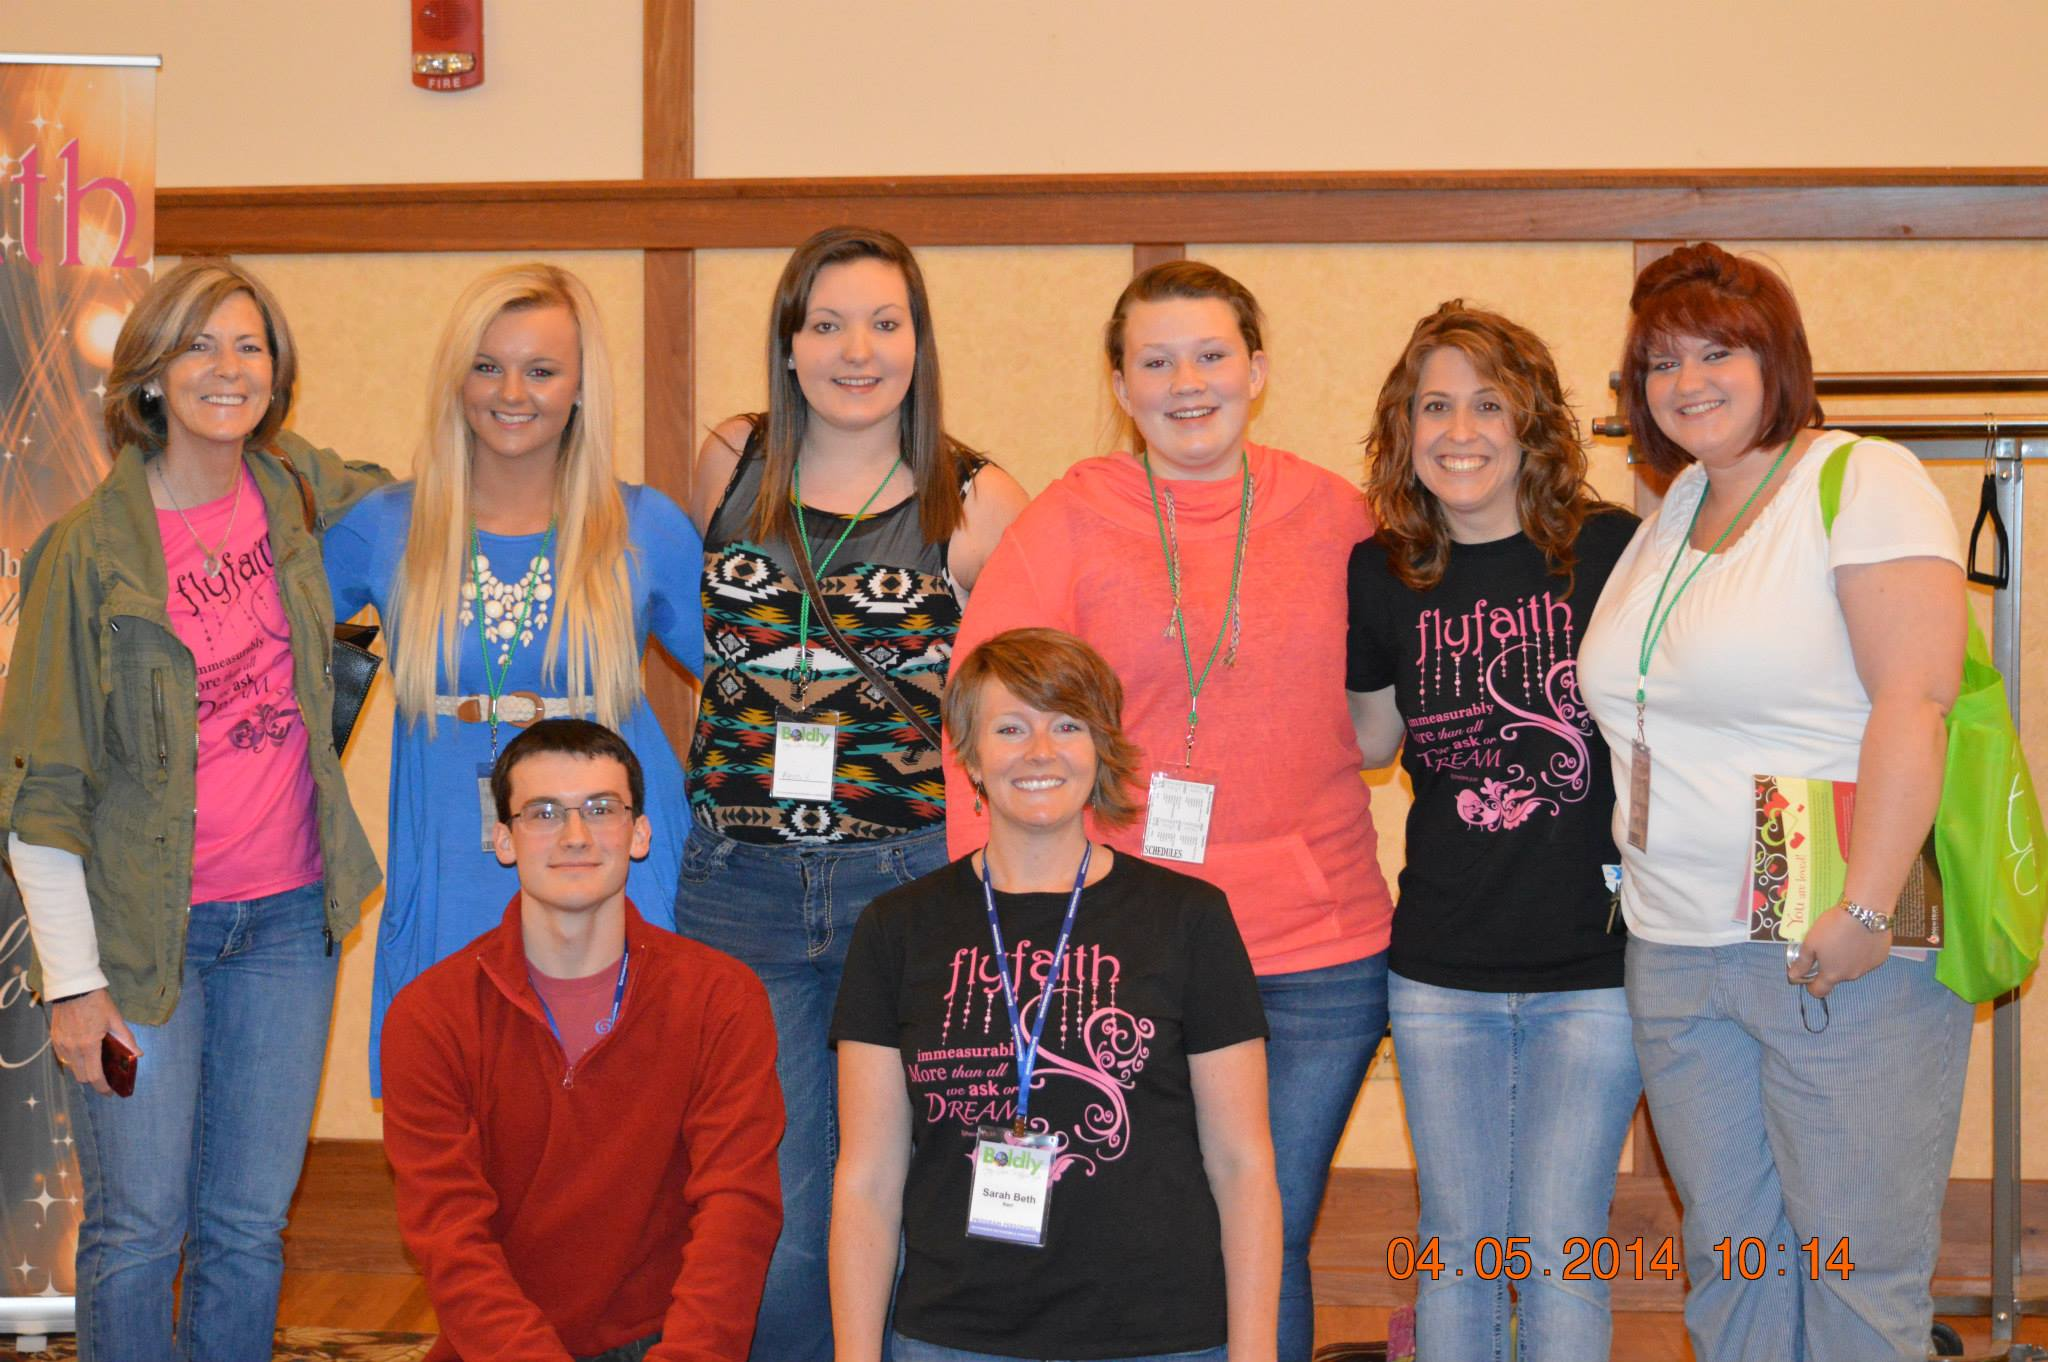 New friends at Connection 2014